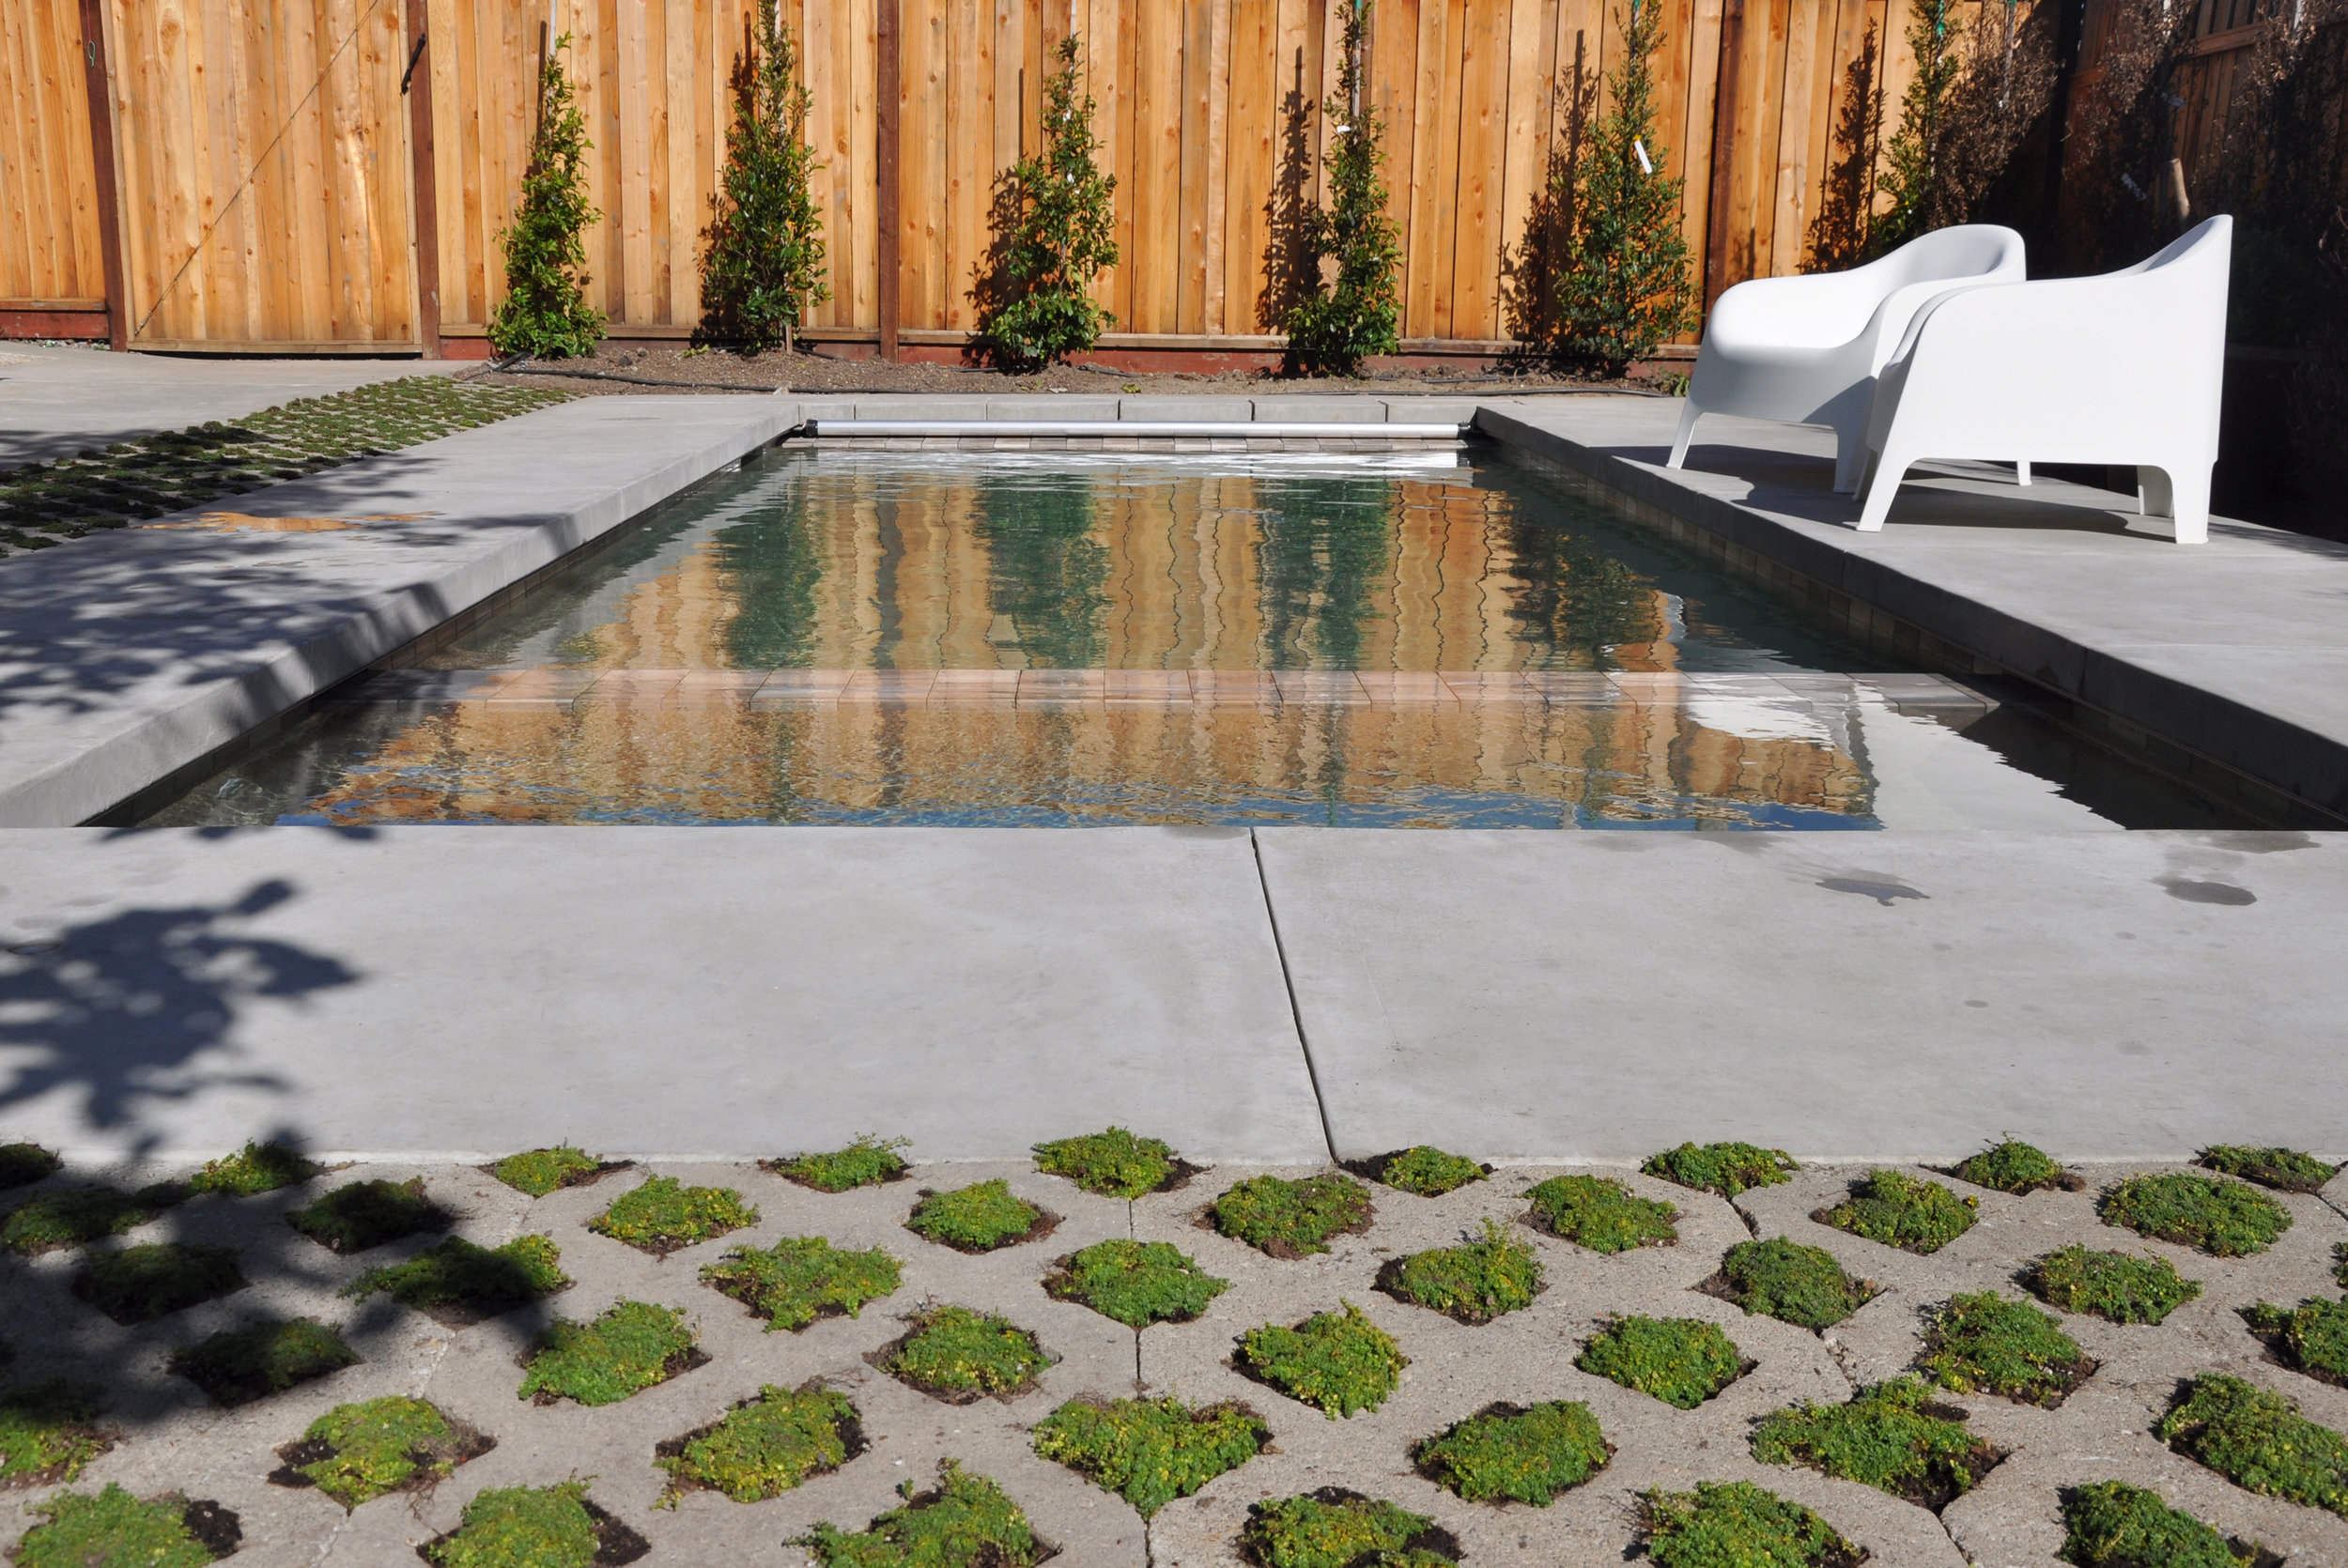 relax in the new pool and hot tub